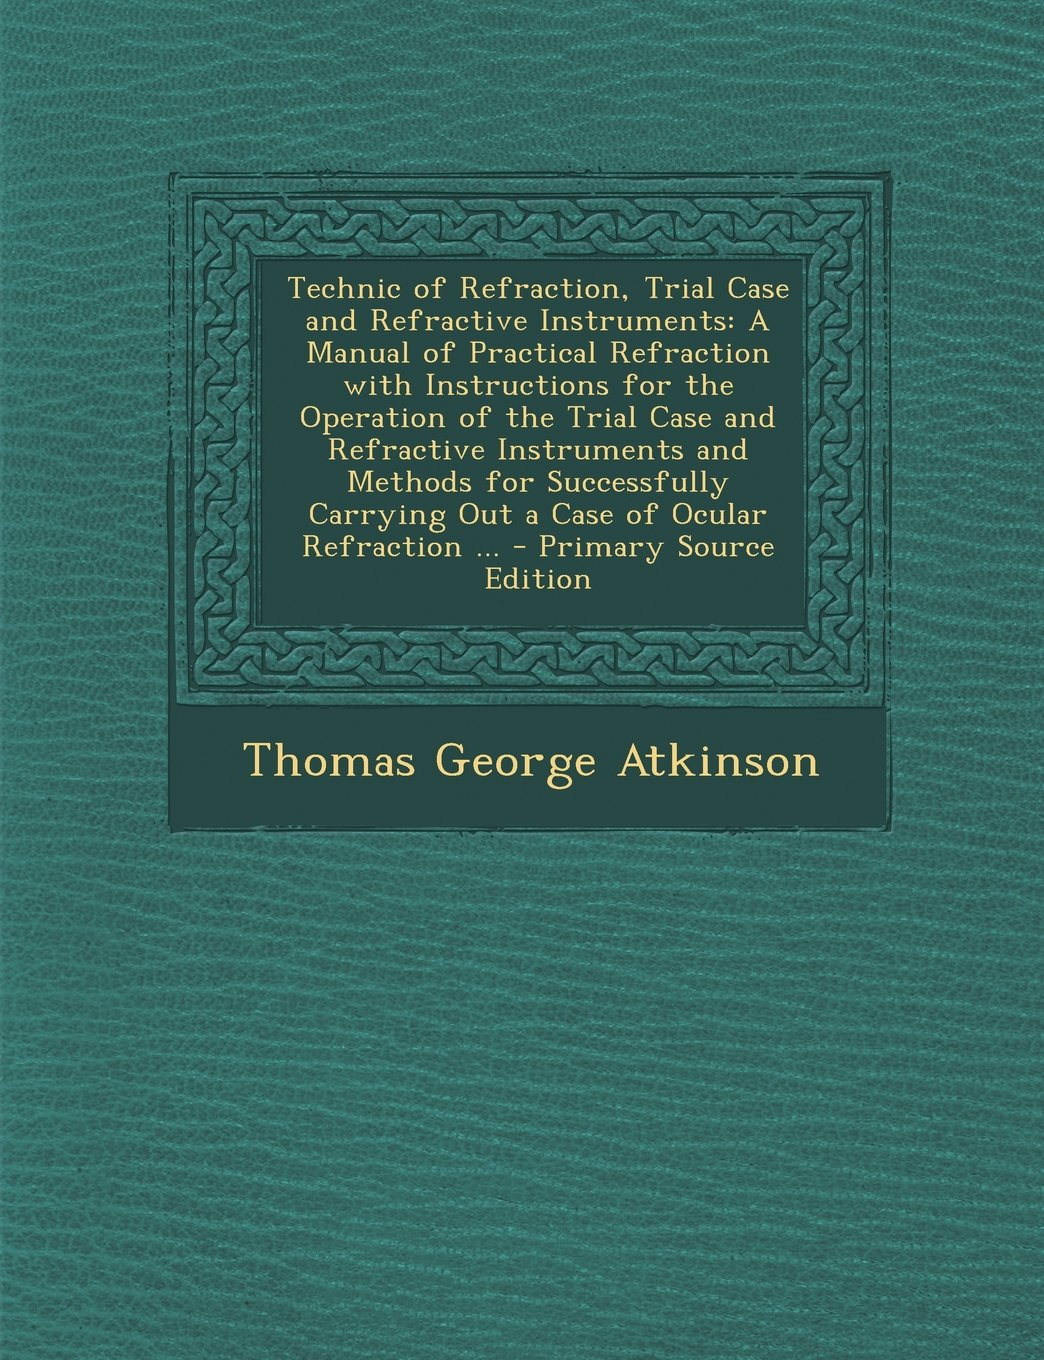 Technic of Refraction, Trial Case and Refractive Instruments: A Manual of Practical Refraction with Instructions for the Operation of the Trial Case ... Out a Case of Ocular Refraction ... - Pri pdf